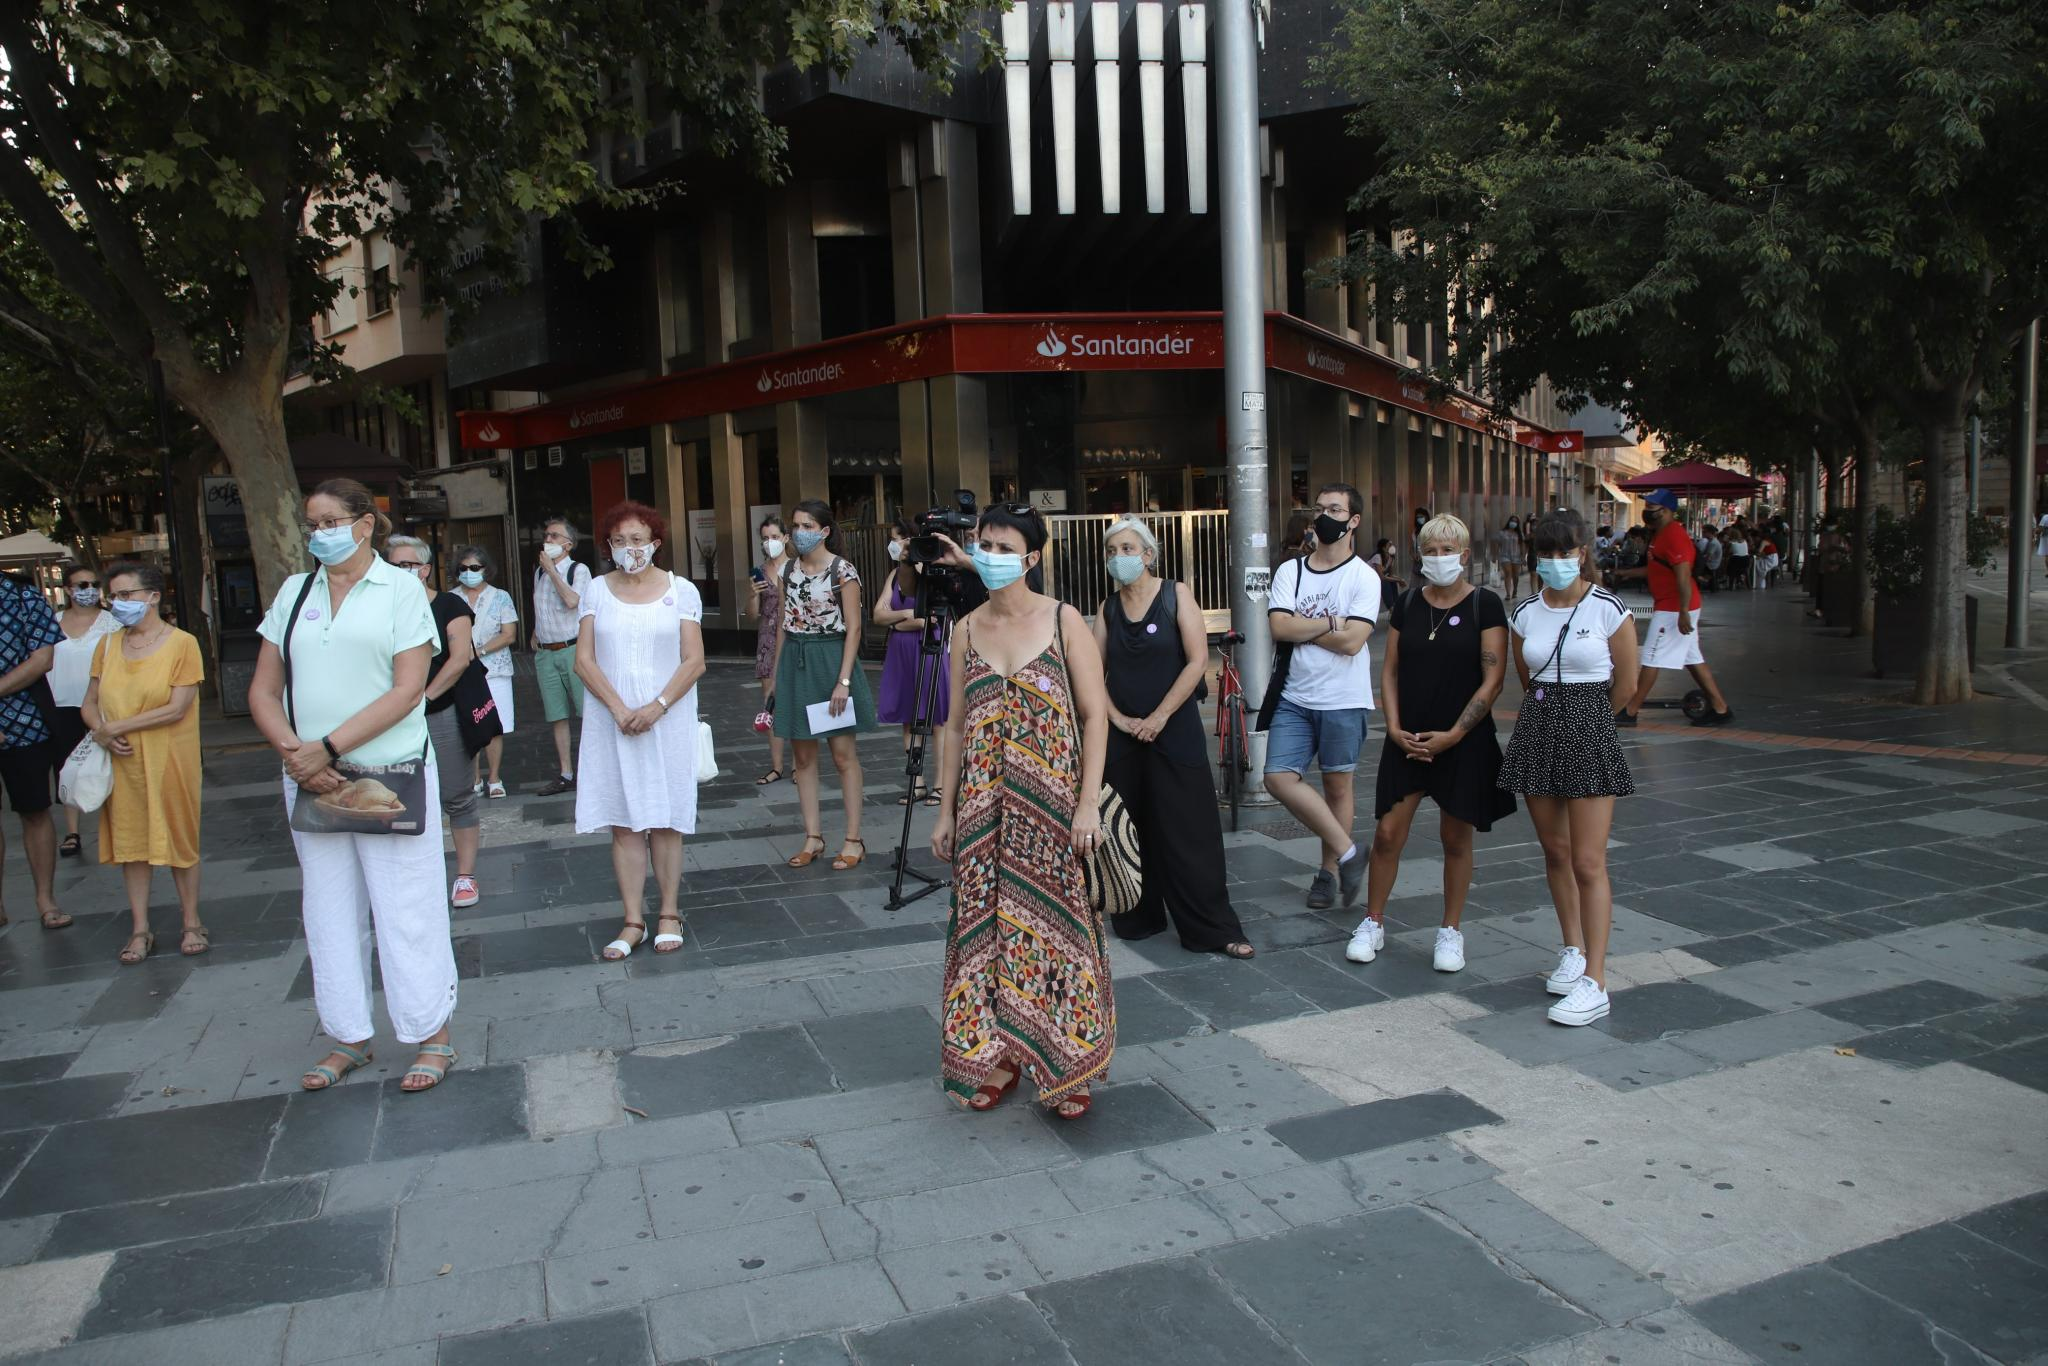 Gathering to protest against domestic violence in Palma